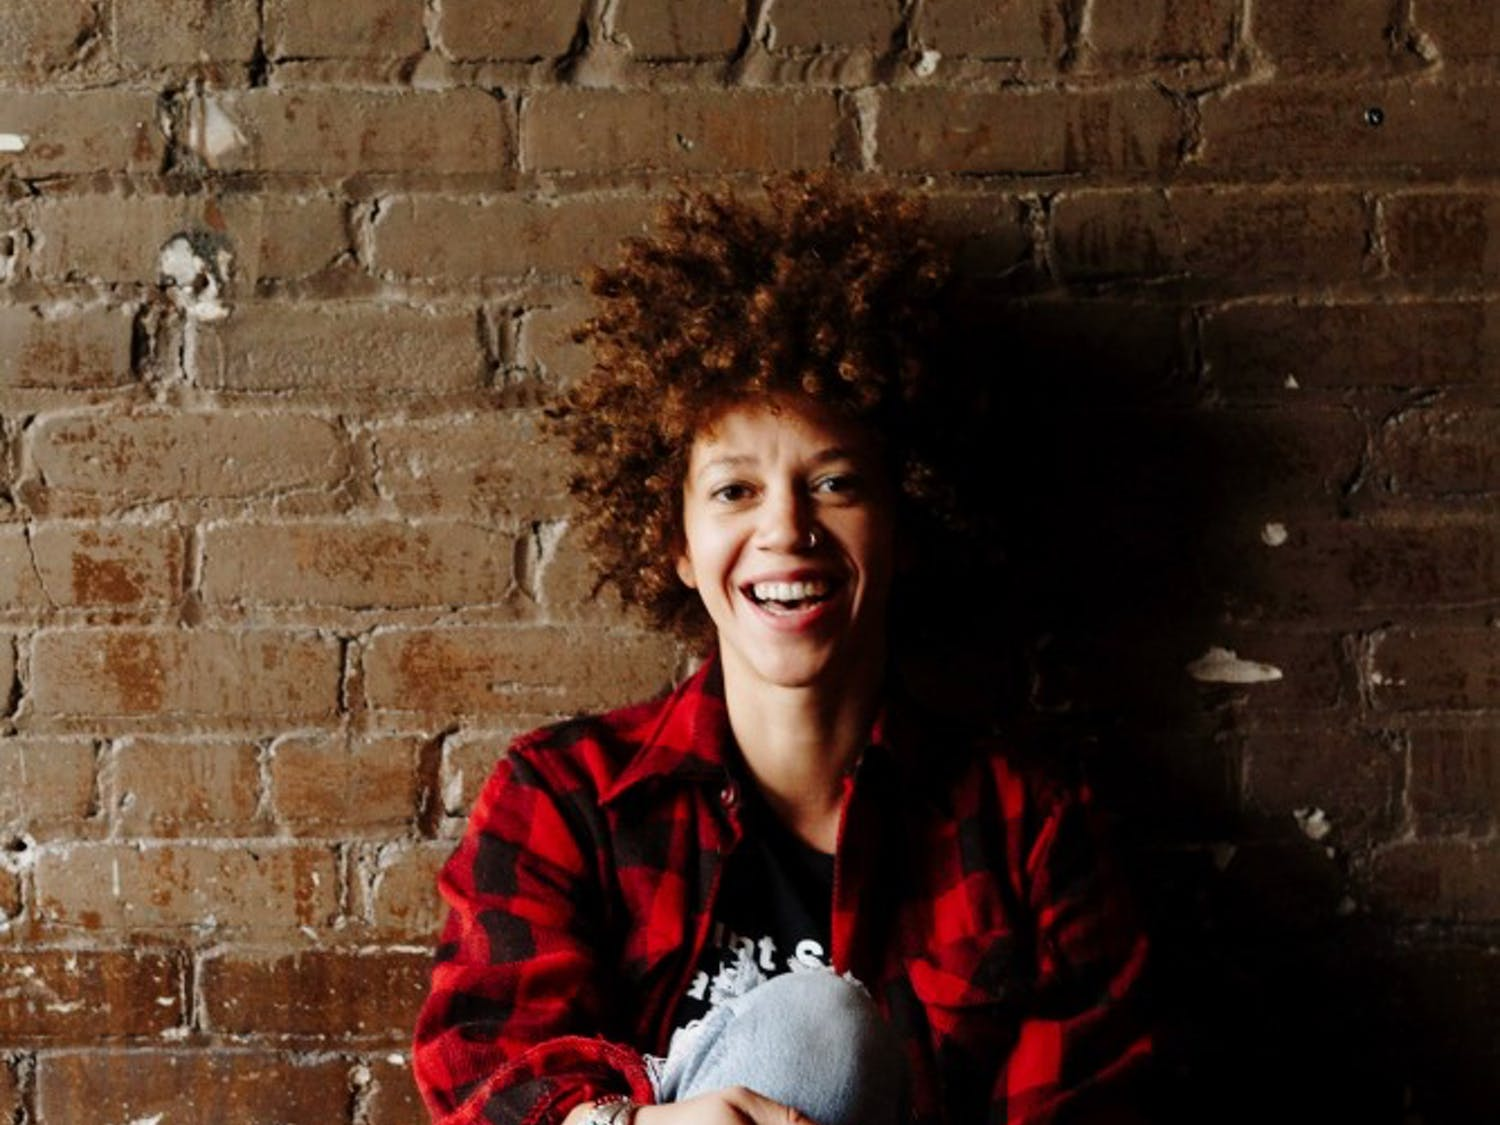 """Chastity Brown, a singer-songwriter currently based in Minneapolis, is performing at Buffalo's Babeville on Nov. 14. Brown spoke with The Spectrum on her upcoming tour and her latest album """"Silhouette of Sirens,"""" released this past May."""